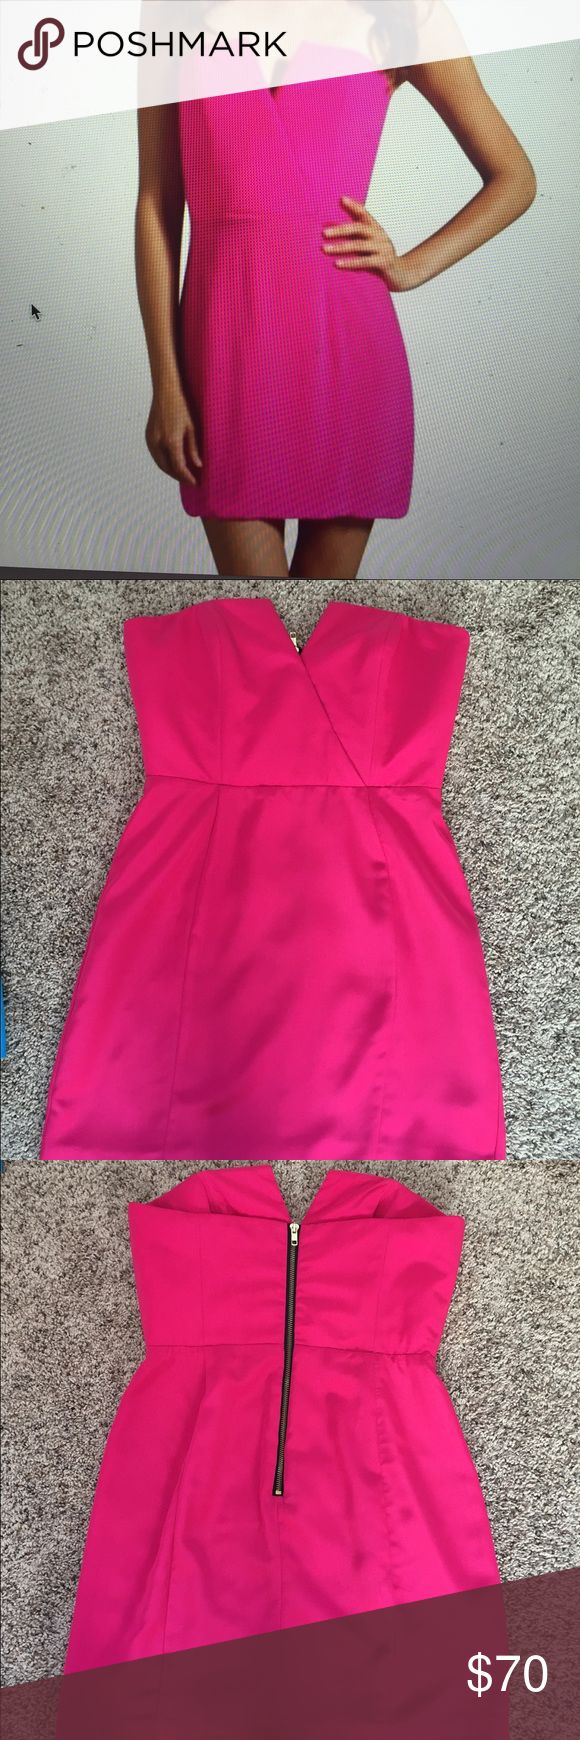 NAVEN Bombshell Dress Strapless cute hot pink going out dress, great condition worn once Naven Dresses Strapless